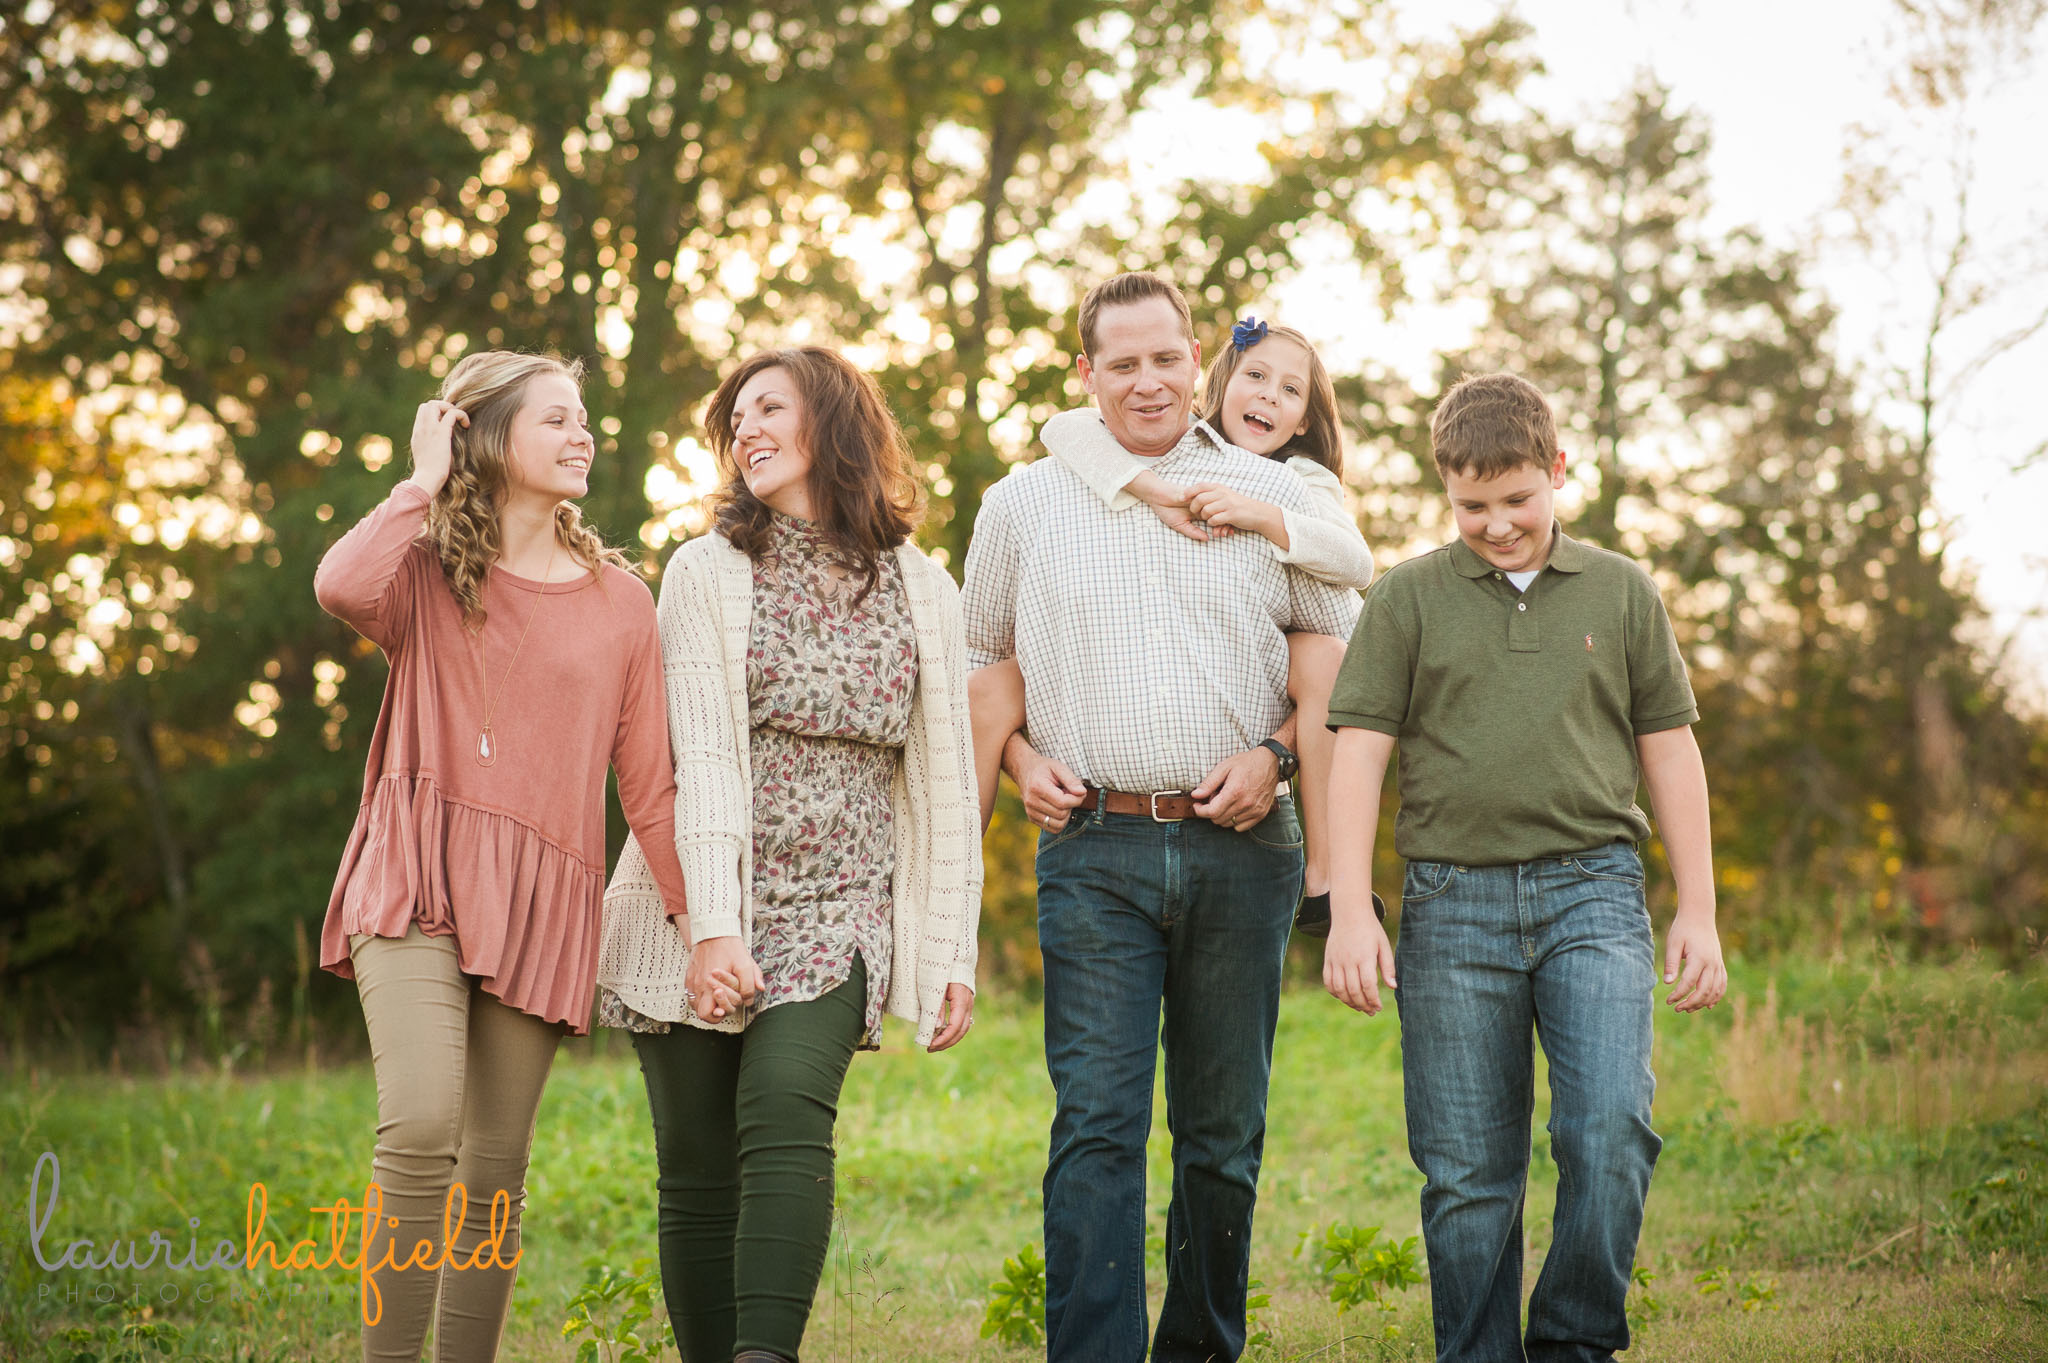 family of 5 walking through a field | Mobile lifestyle photographer